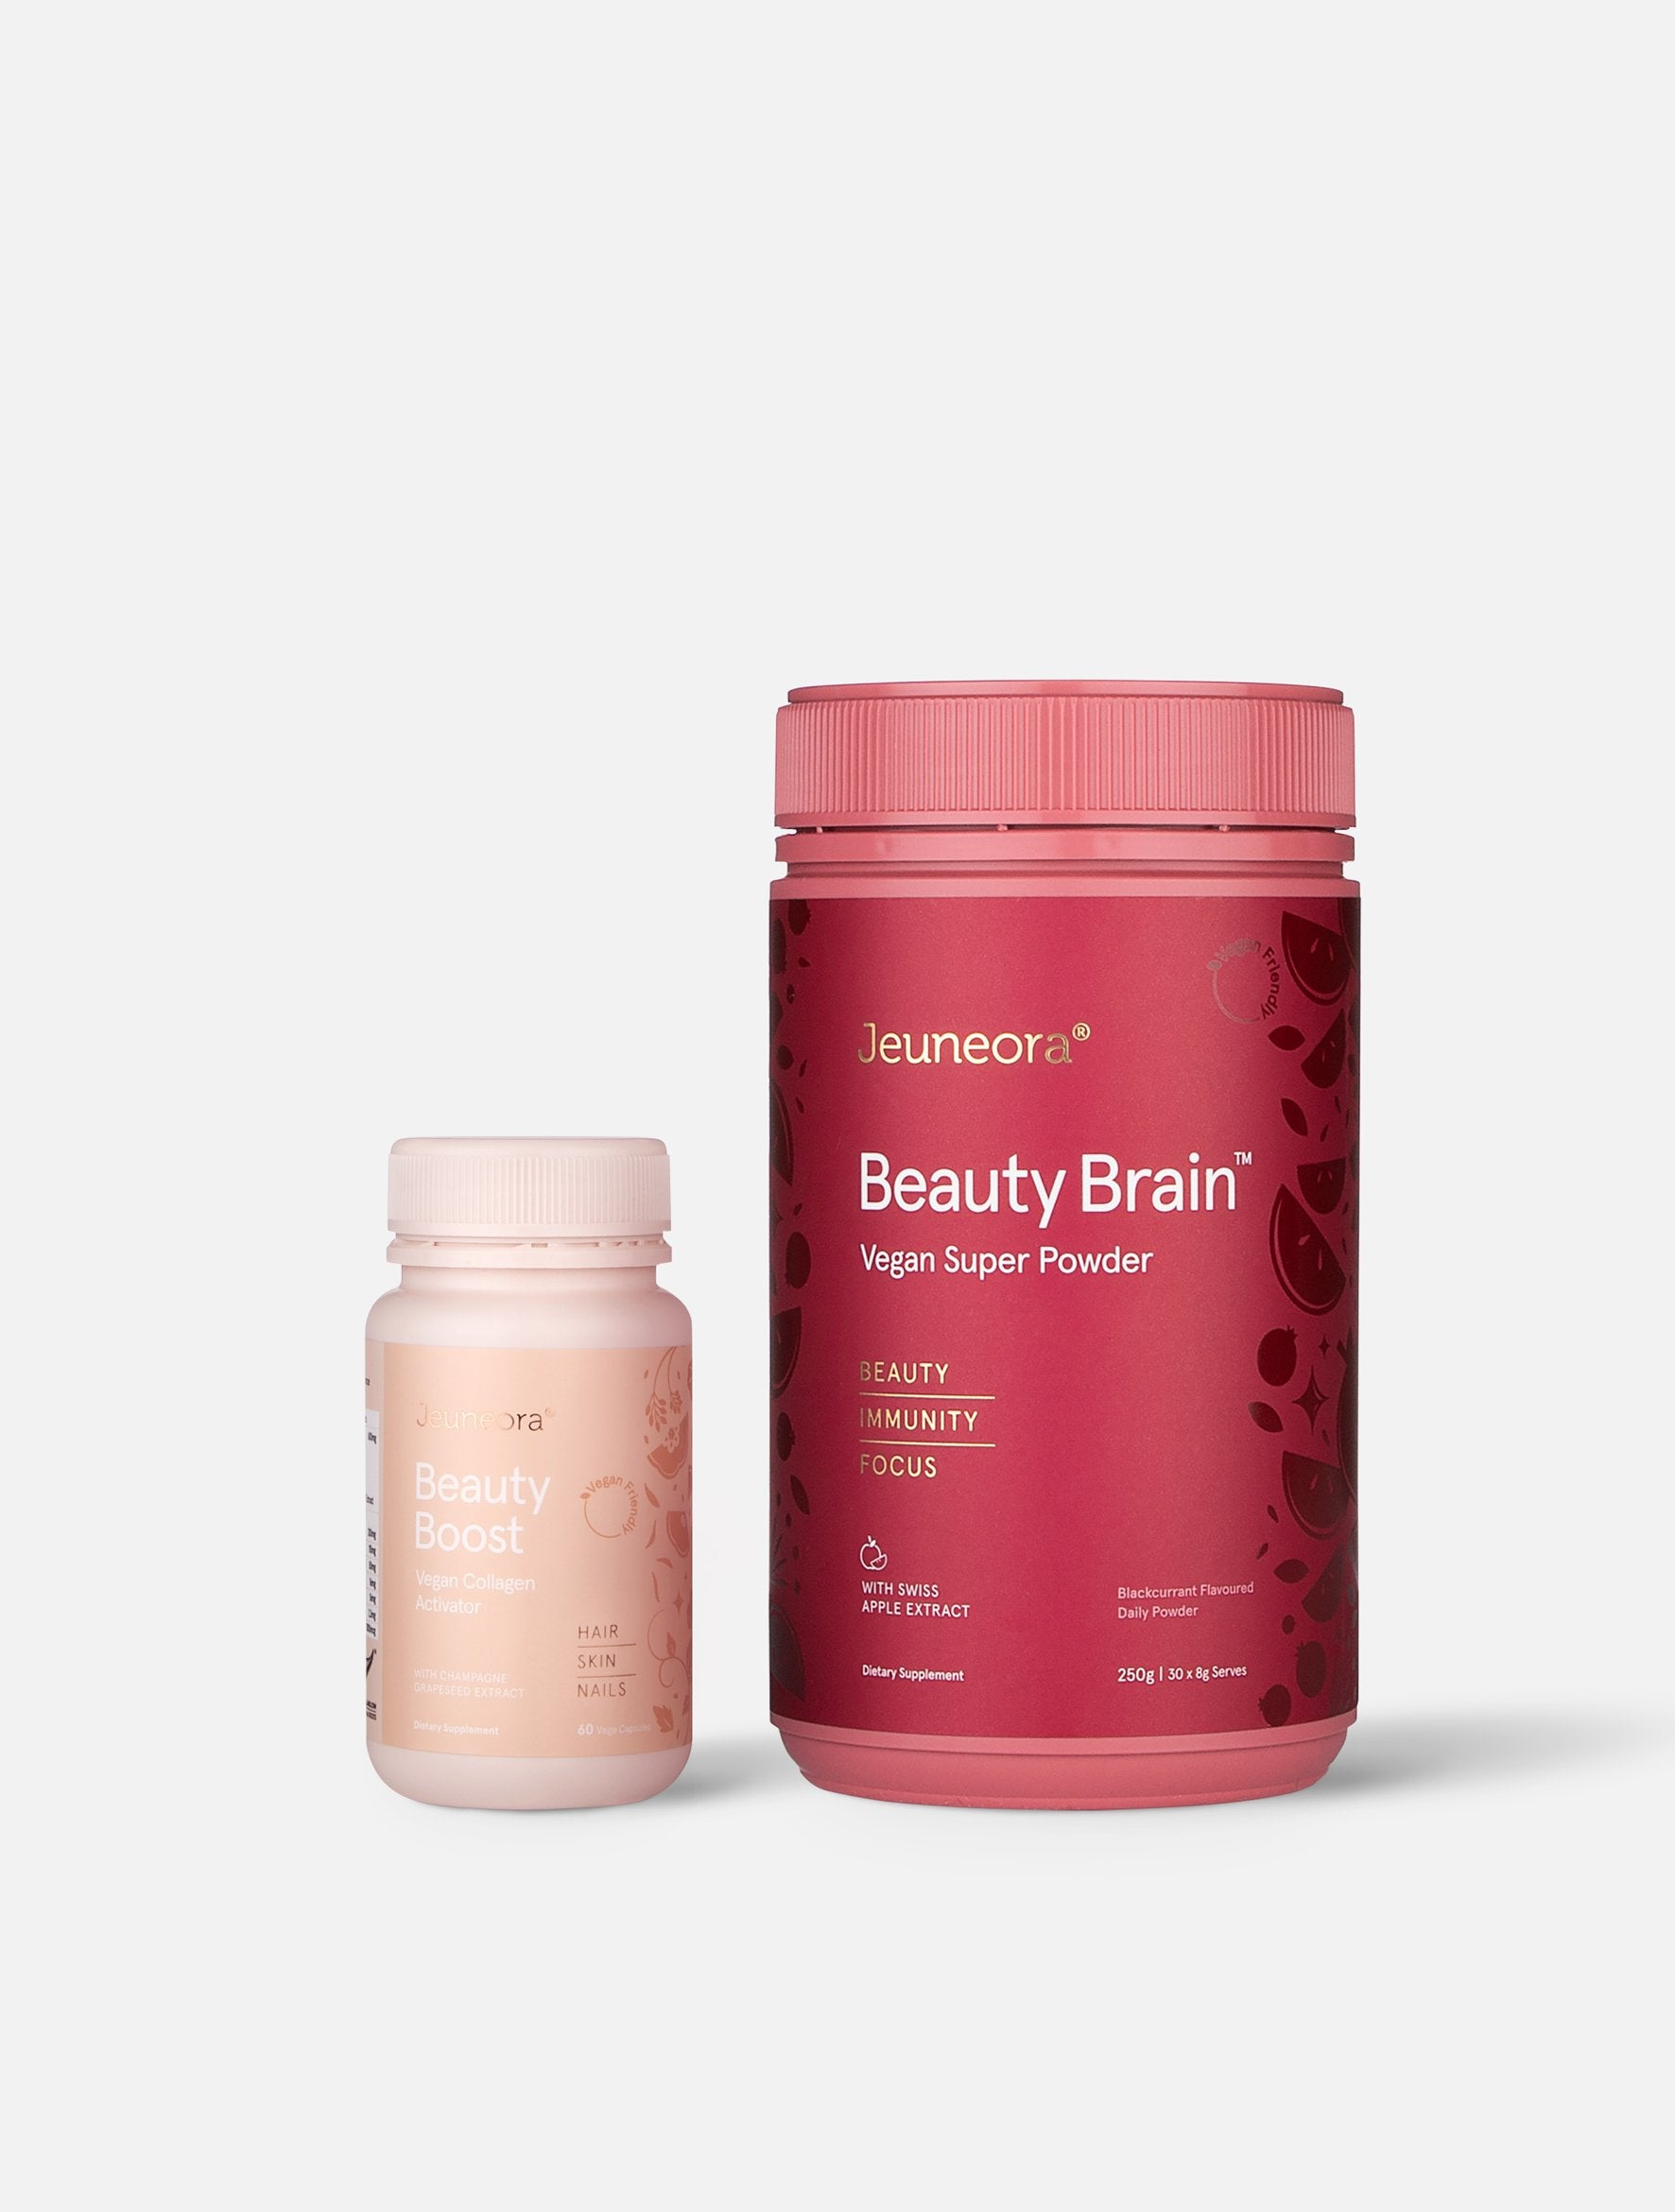 Jeuneora Beauty Brain™ and Beauty Boost Capsules